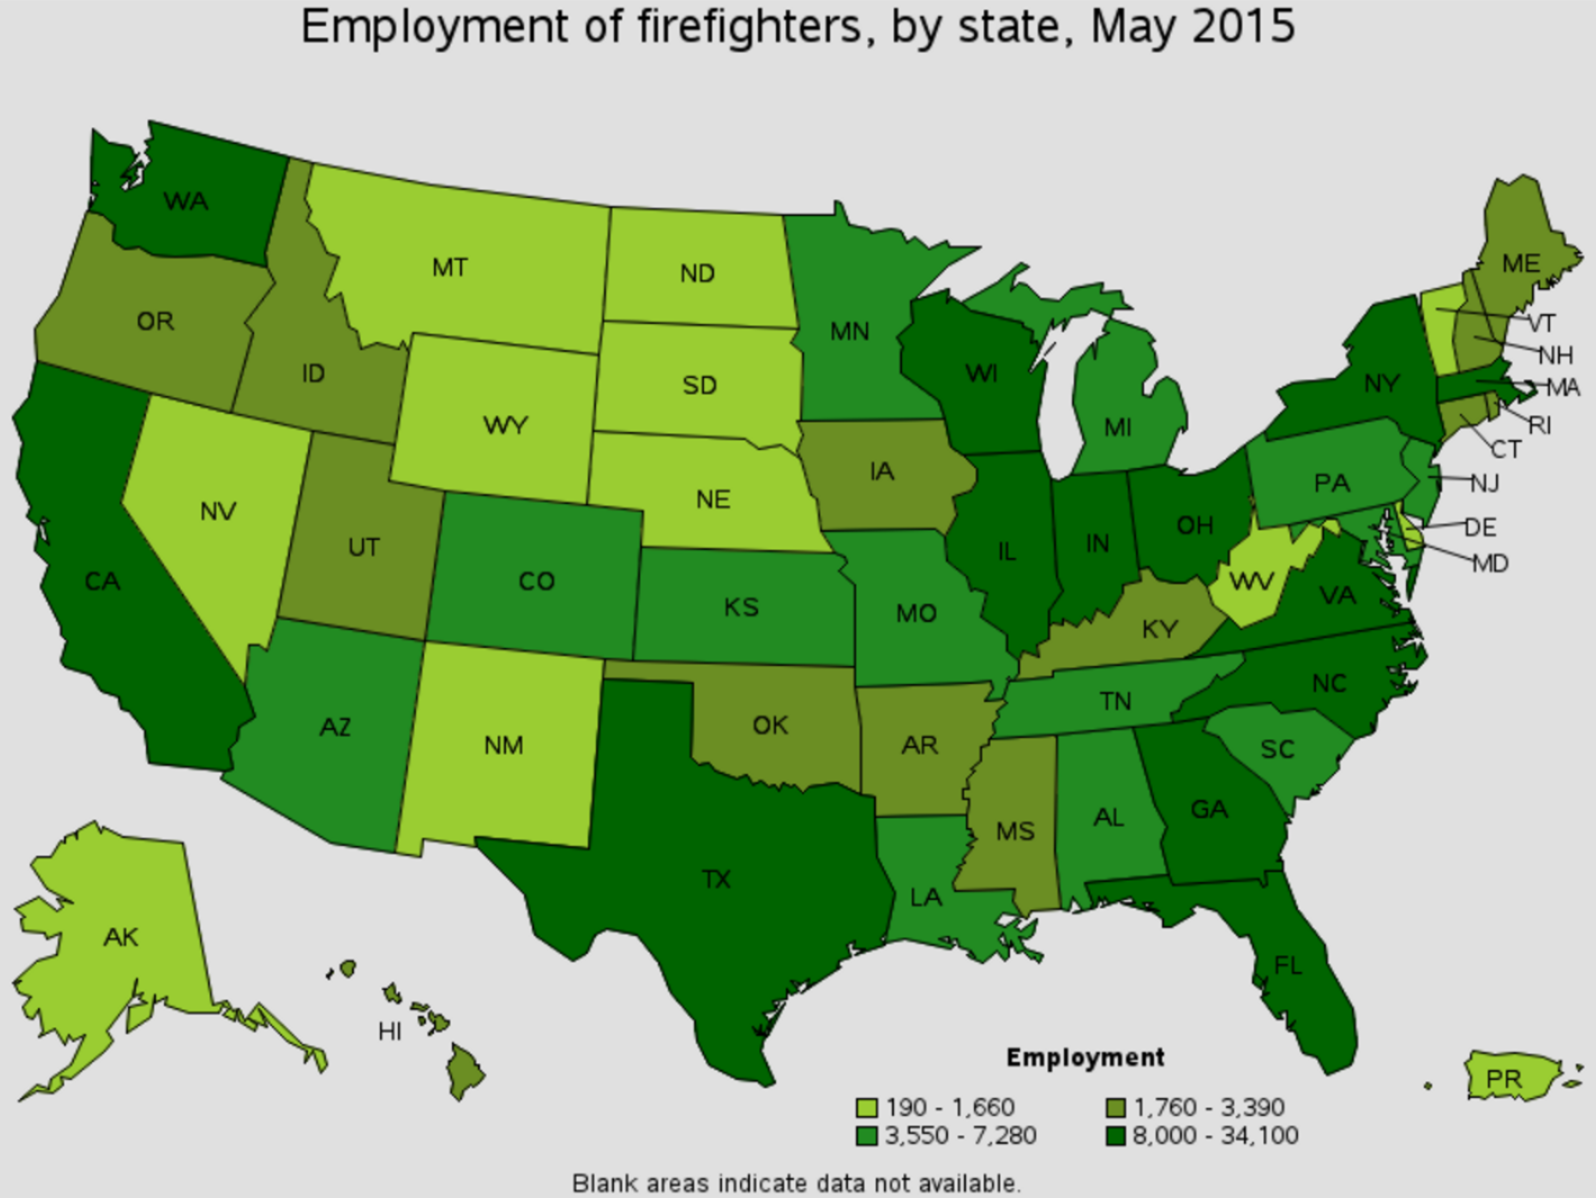 firefighter job outlook by state Wheat Ridge Colorado